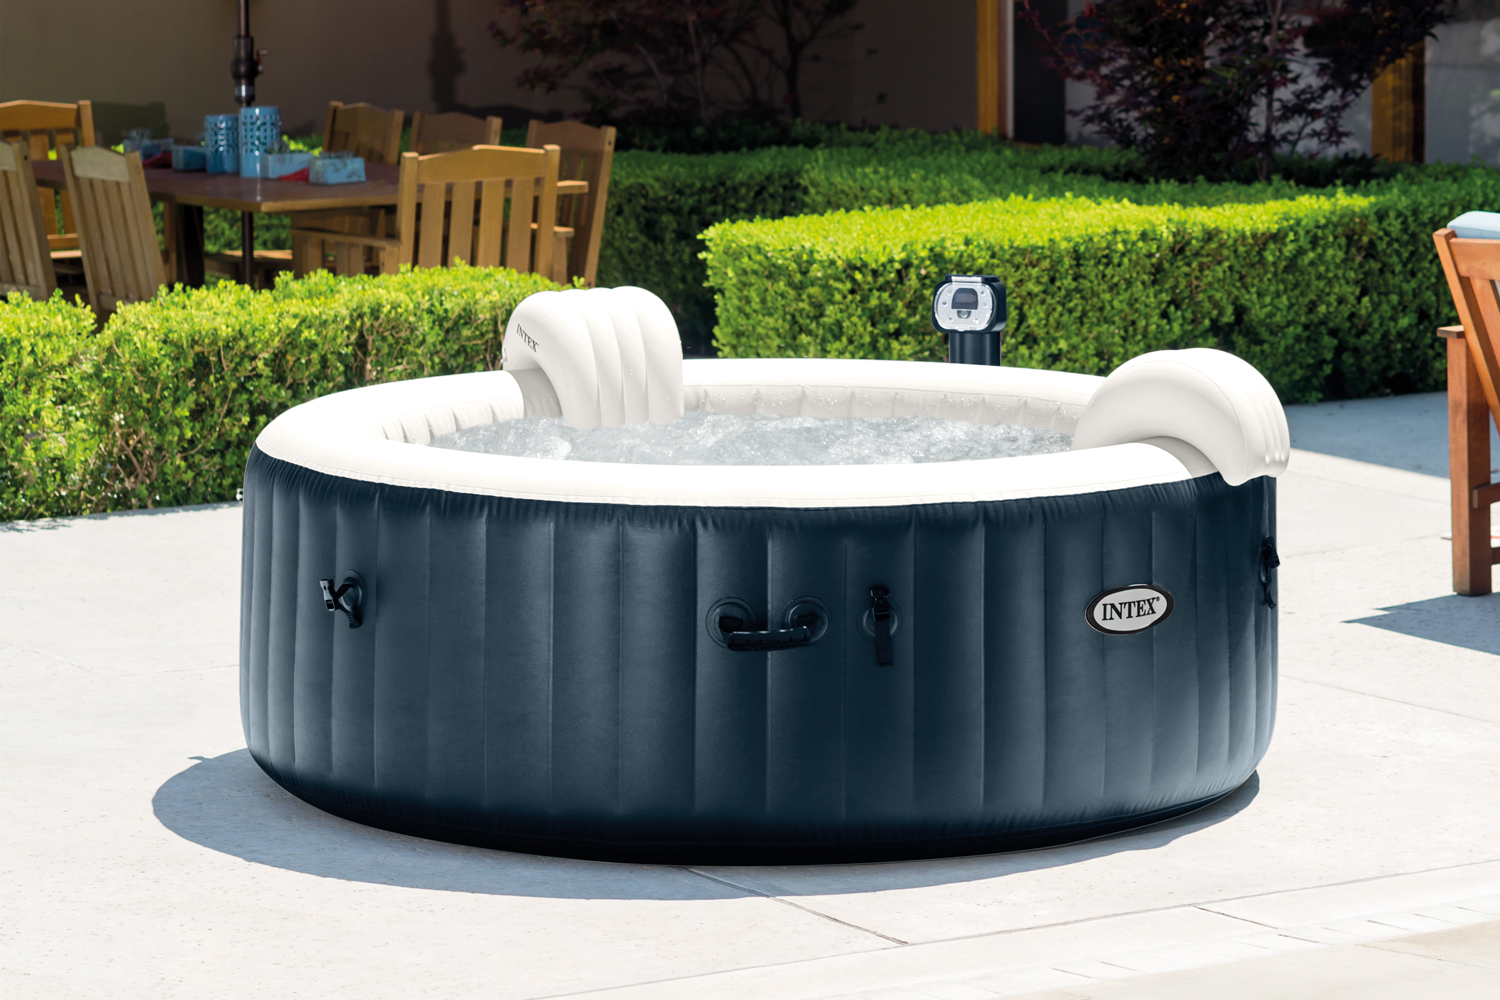 Intex pure spa 6 person inflatable portable heated bubble for Aspirateur spa intex